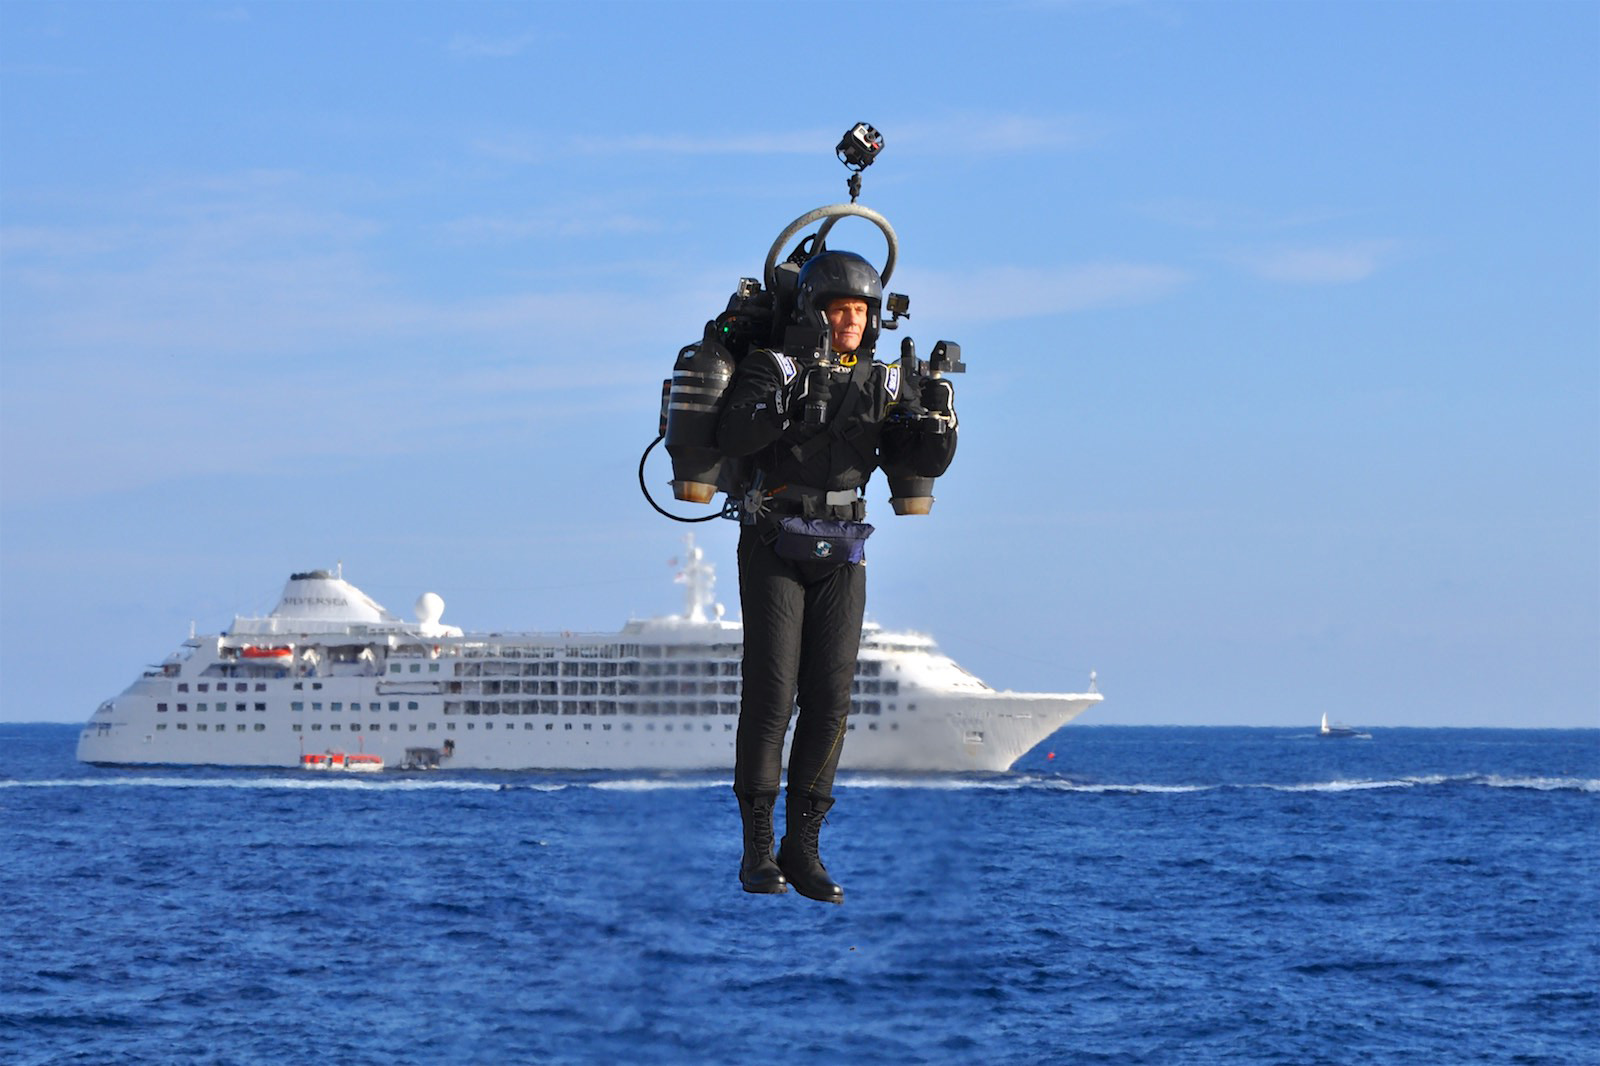 David Mayman demonstrated the JetPack Aviation JB-10 in Monaco. Photo courtesy of JetPack Aviation.